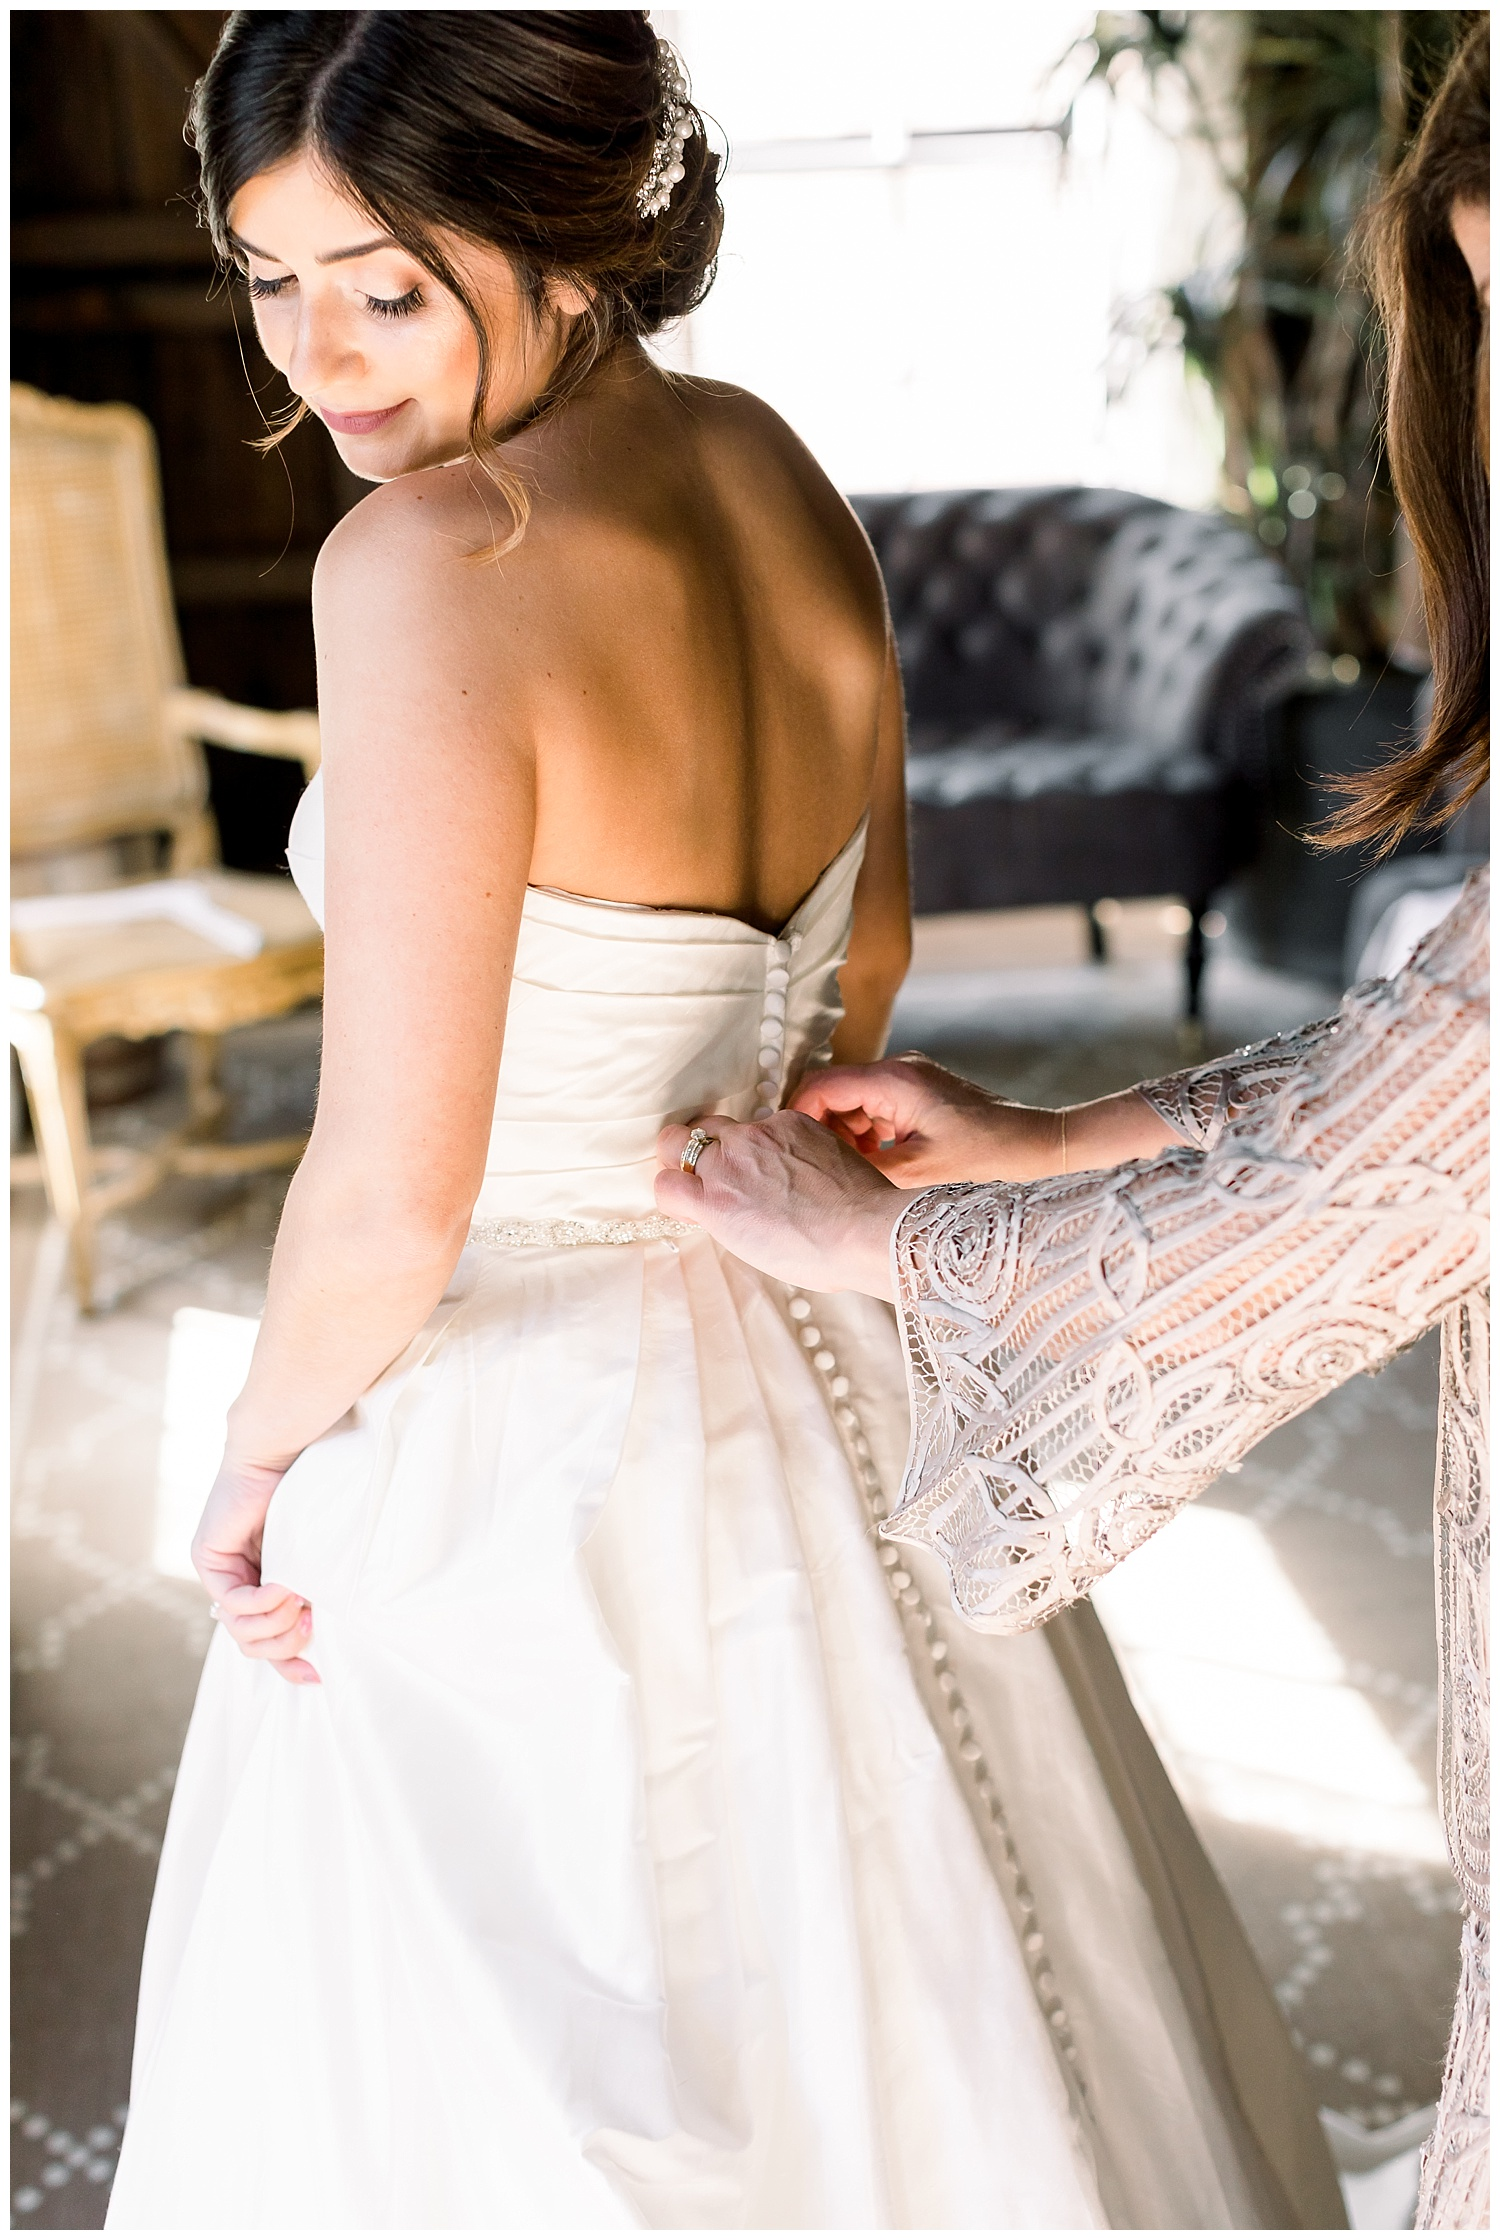 the-barns-cooper-molera-bridal-getting-ready-suite-ags-photoart-epiphany-boutique.jpg